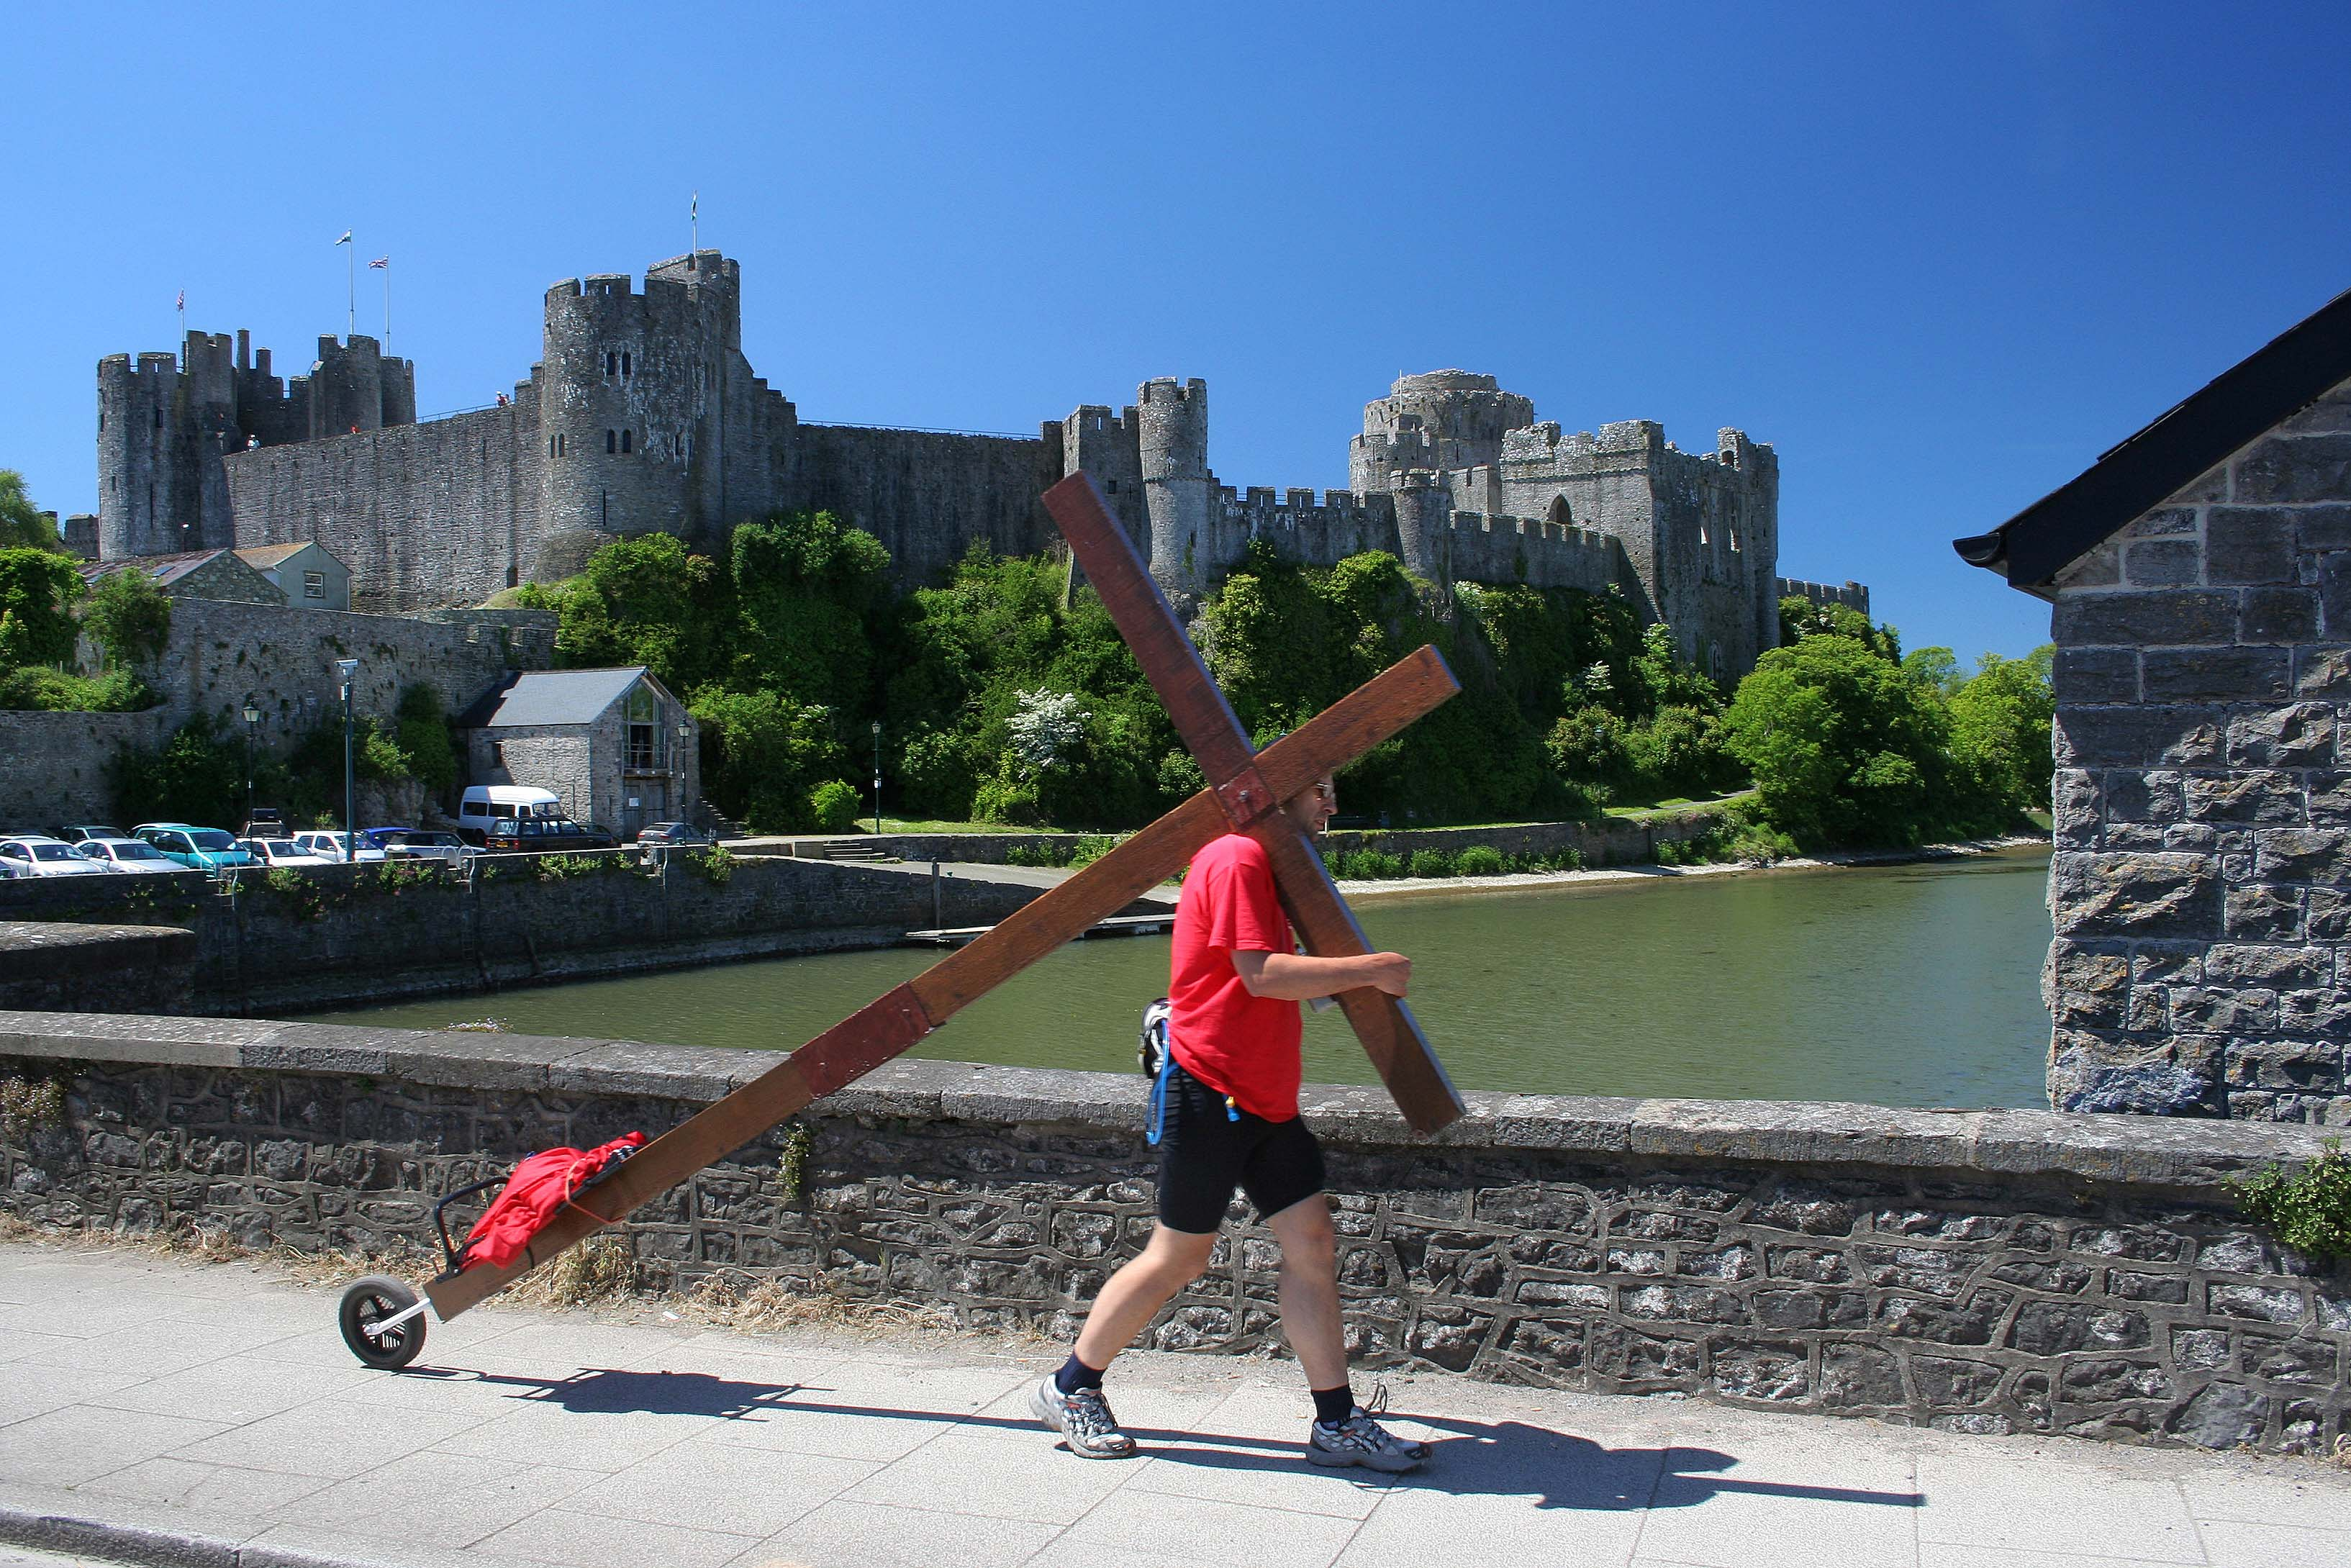 Counties evangelist Clive Cornish walking past Pembroke Castle with his cross. The magnificent medieval castle is viewed behind Clive as he crosses the West Wales river.